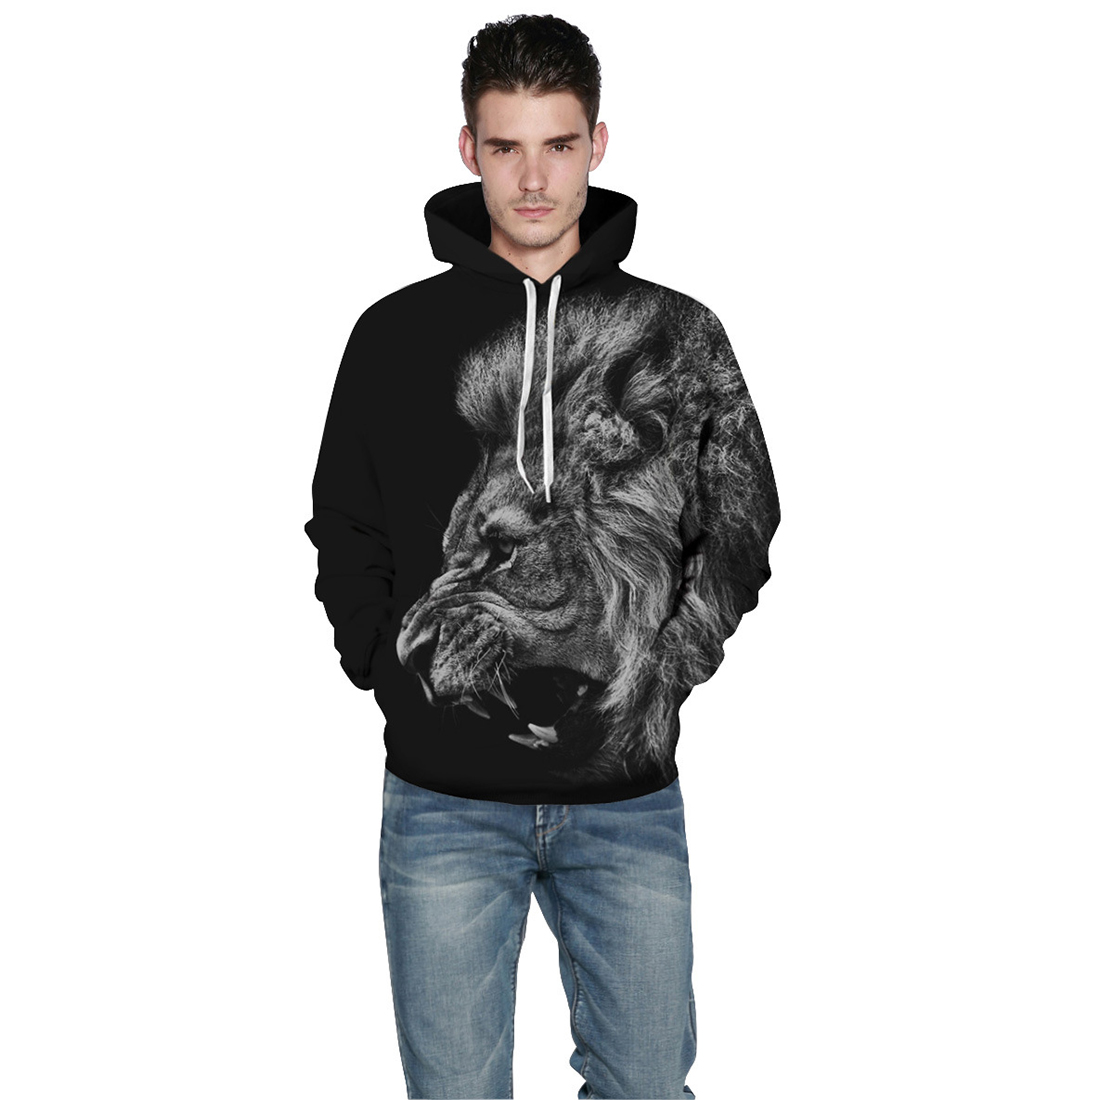 Men/Women New Fashion 3d Ferocious Lion Print Sweatshirts Thin Spring Autumn Hooded Pullovers Tops